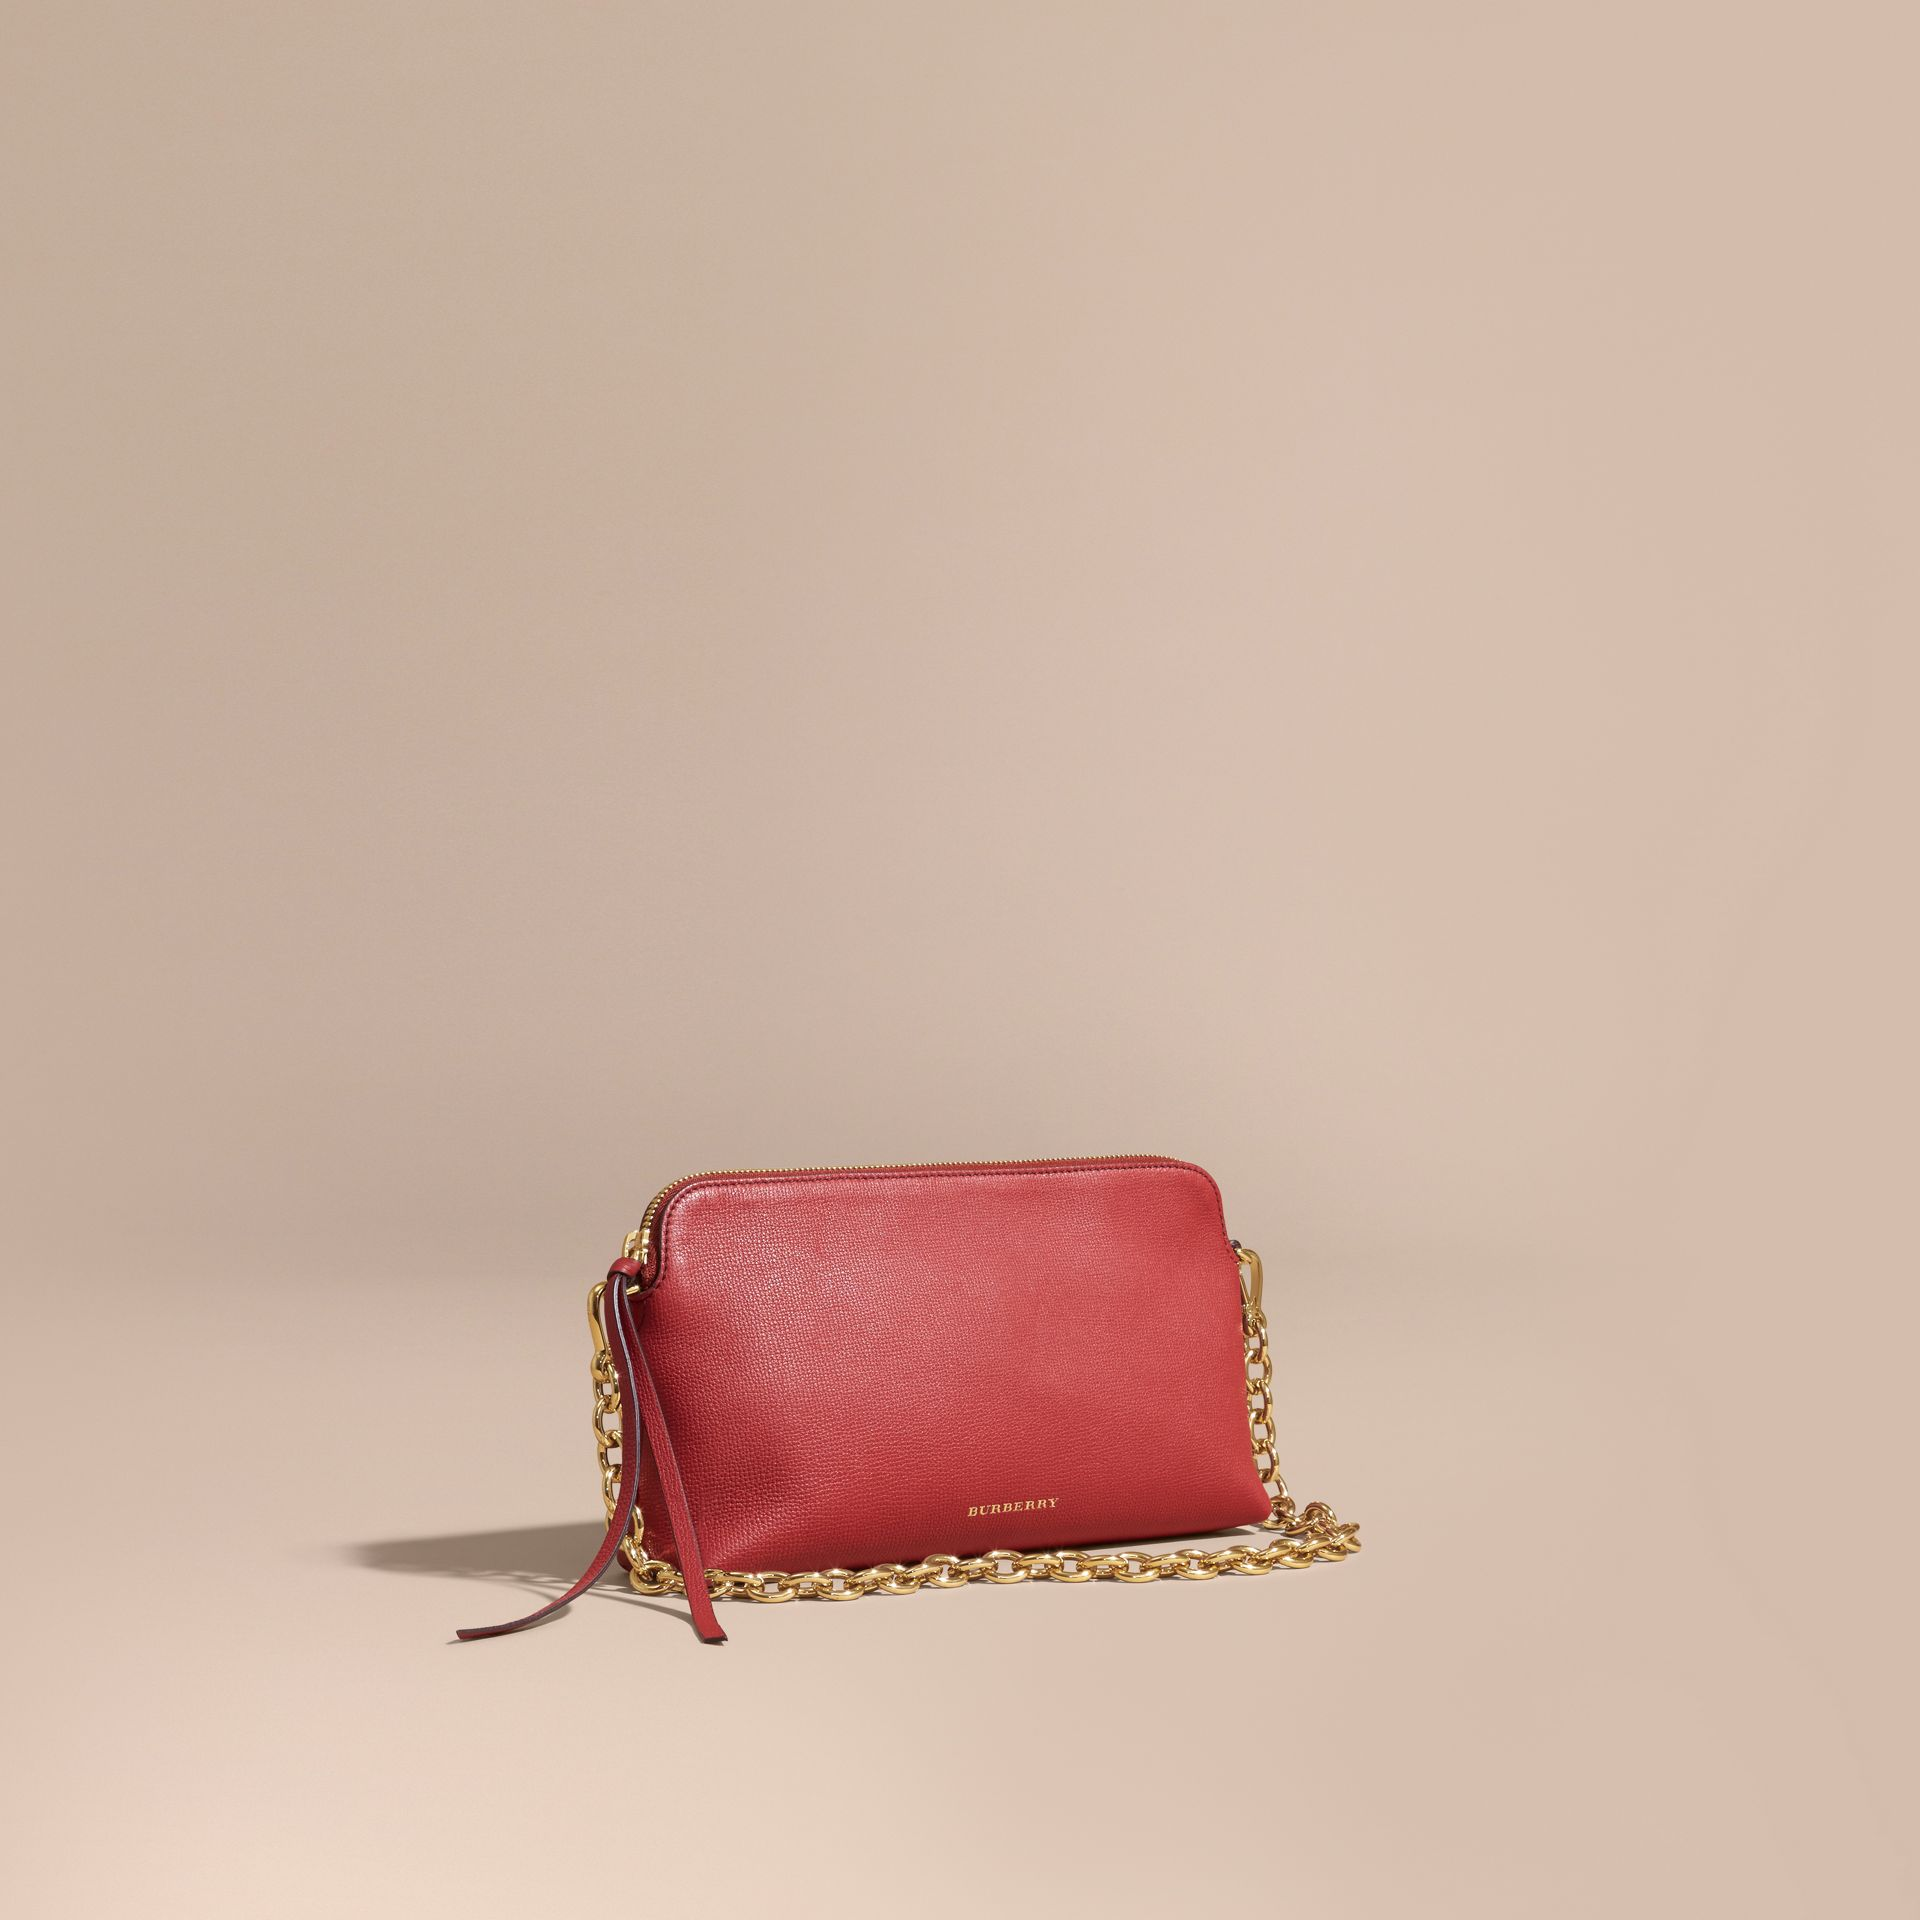 Russet red Grainy Leather Clutch Bag Russet Red - gallery image 1